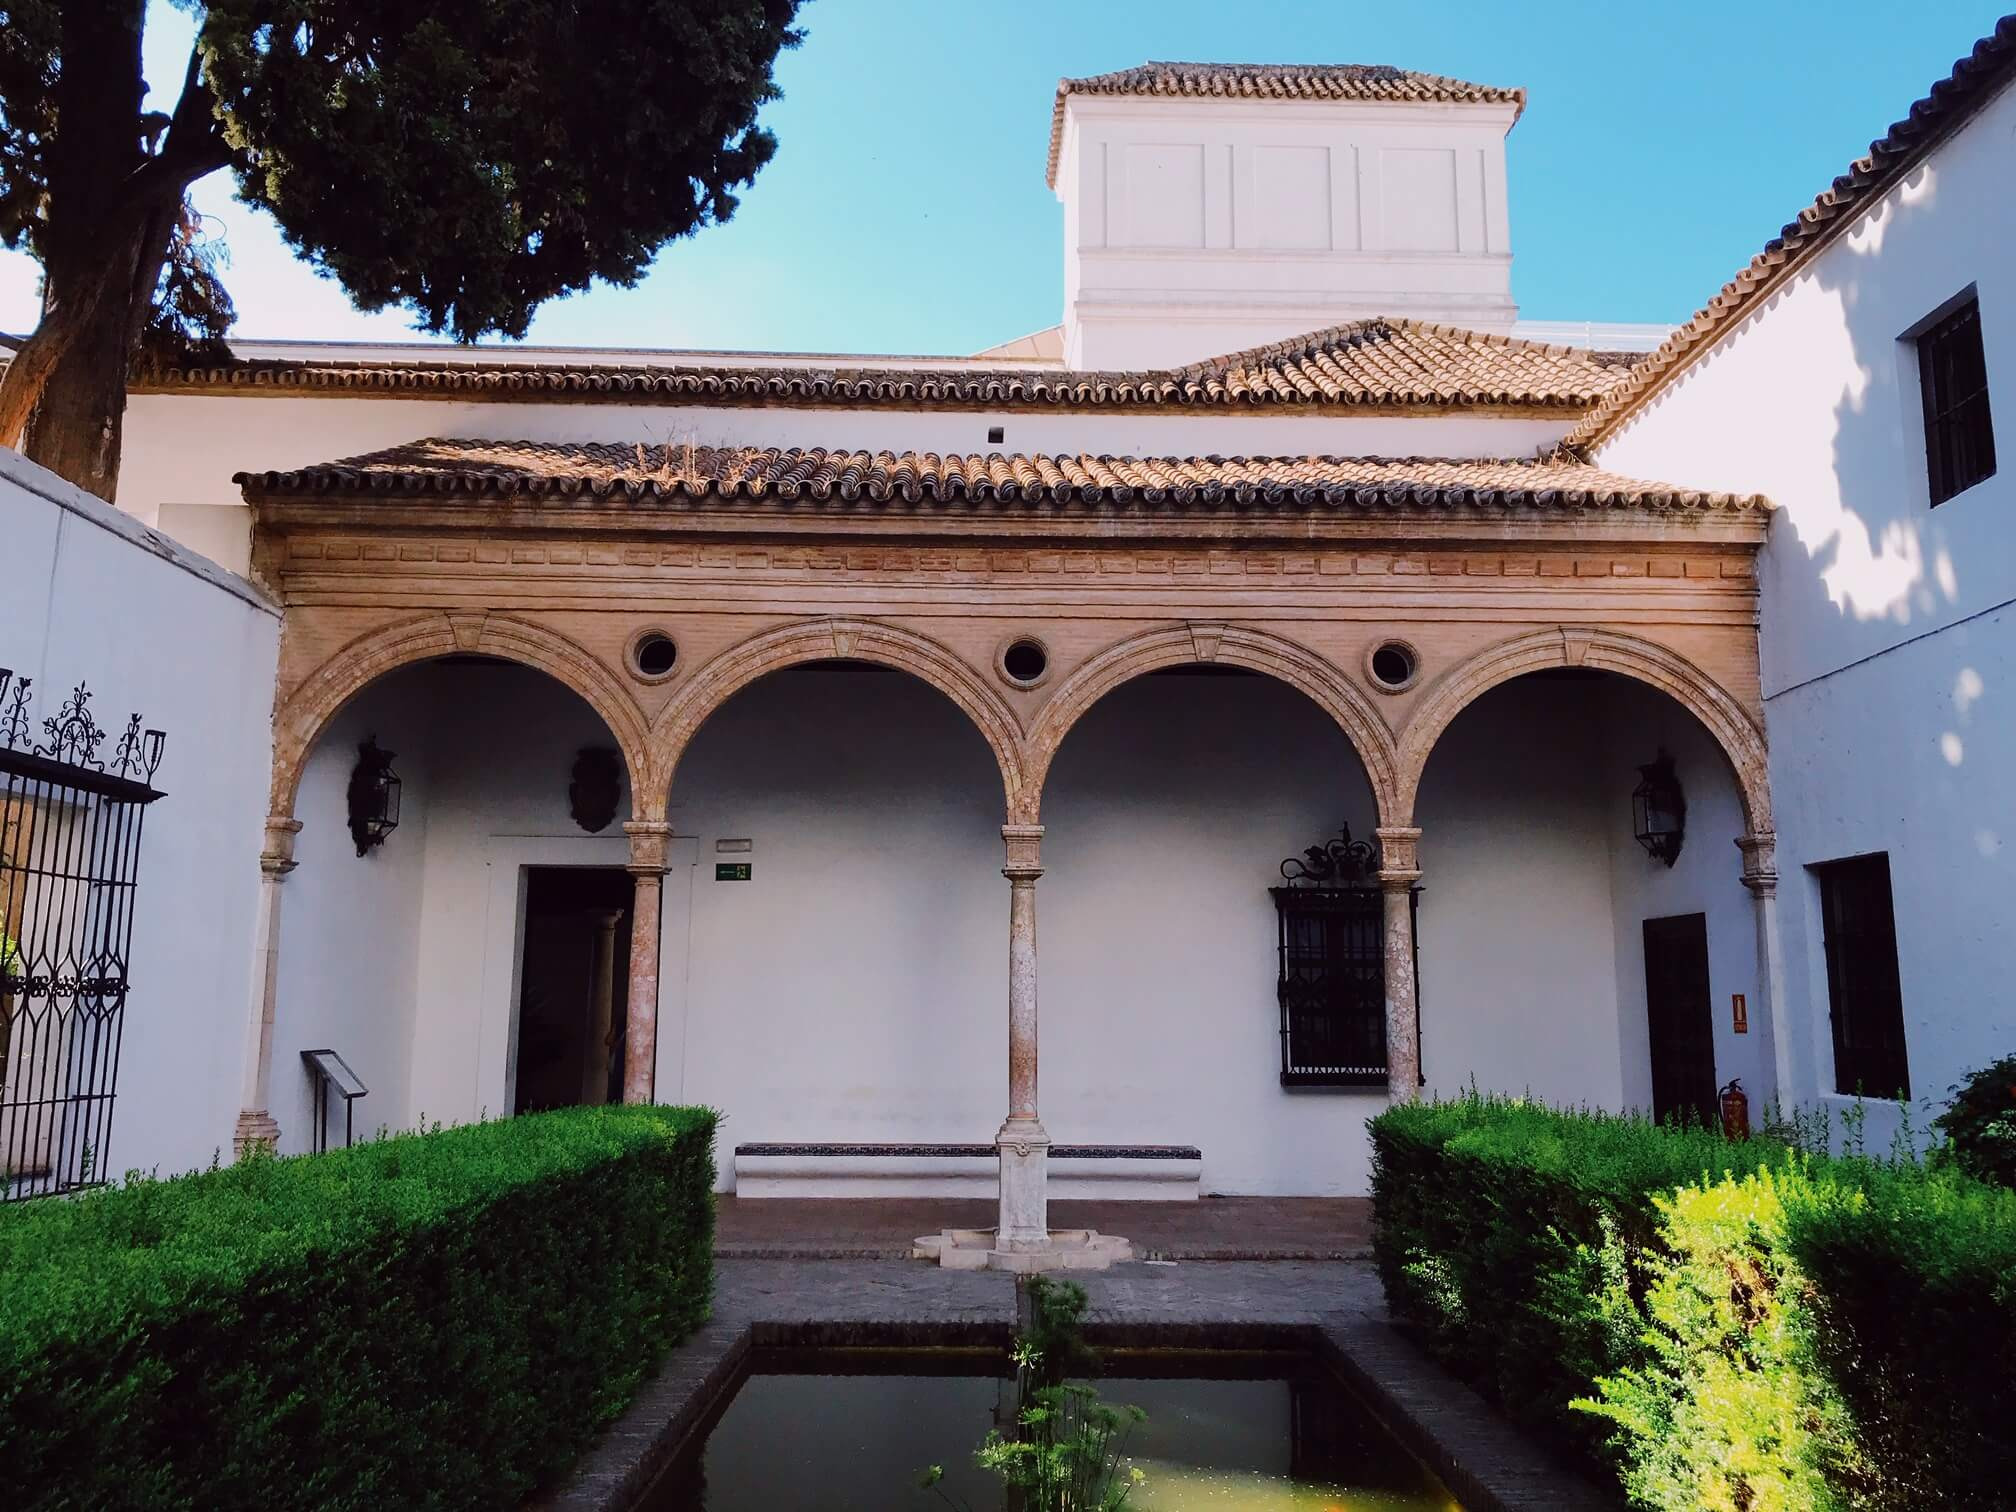 Real Alcazar Places to visit in Seville